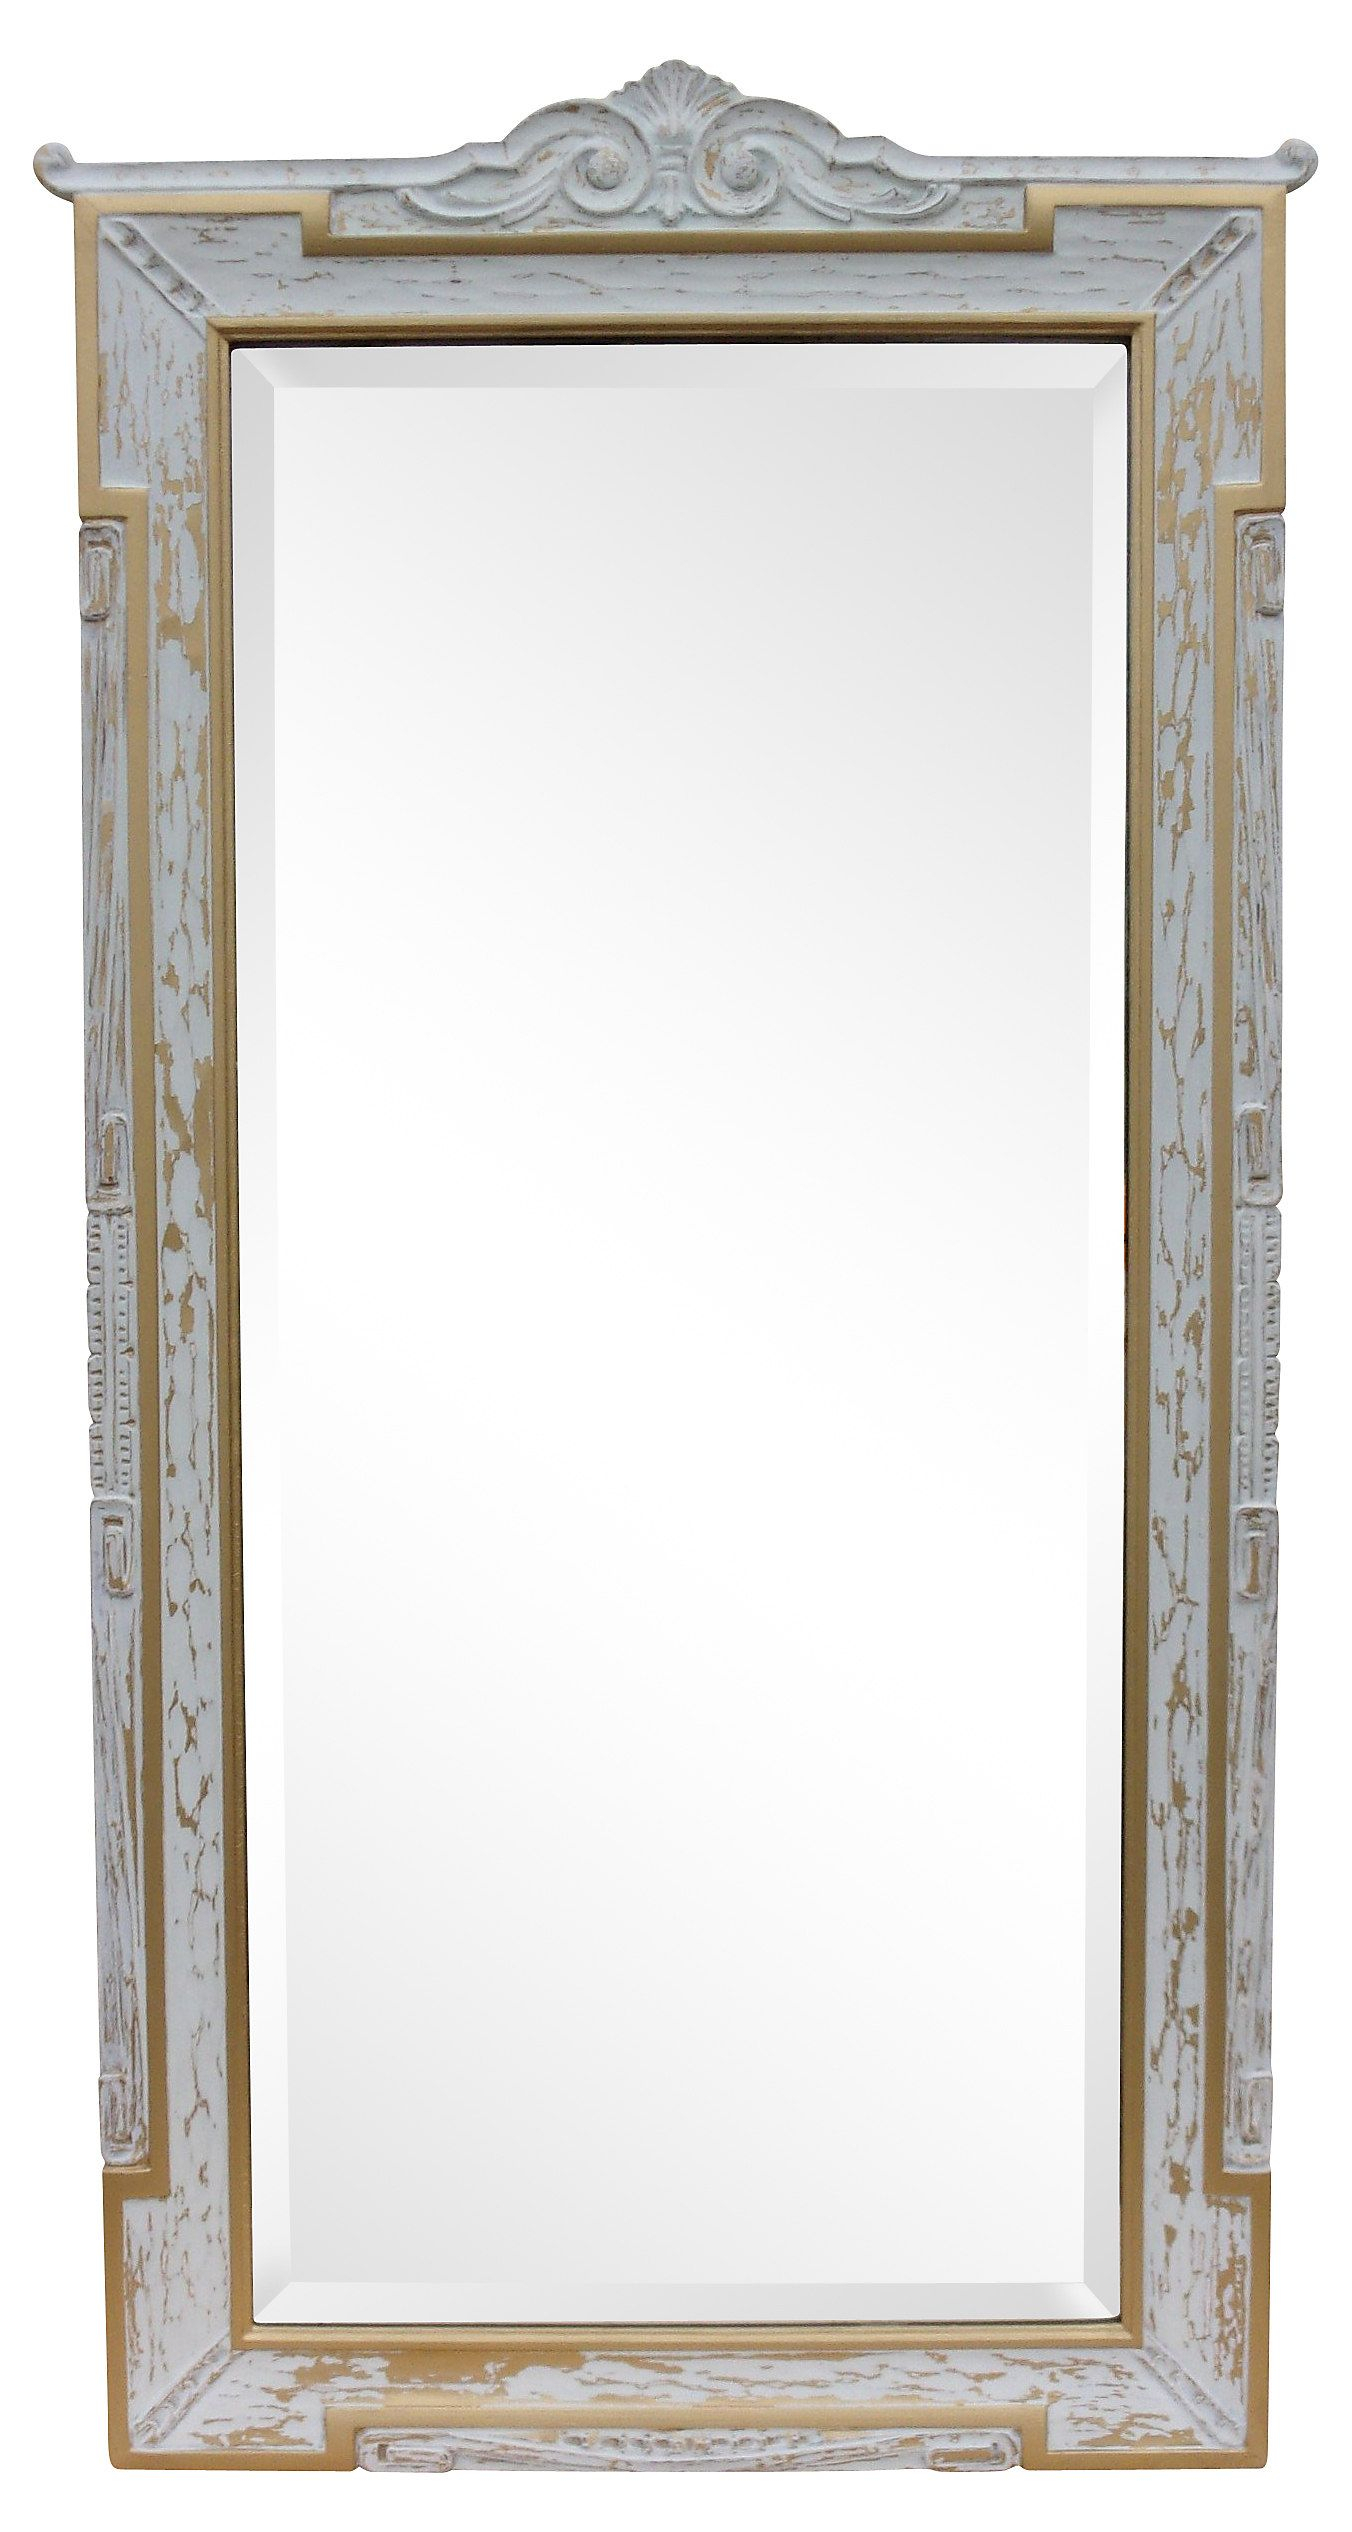 1920S Neoclassical Style Mirror | One Kings Lane | Mirrors With Regard To Stamey Wall Mirrors (Image 1 of 20)